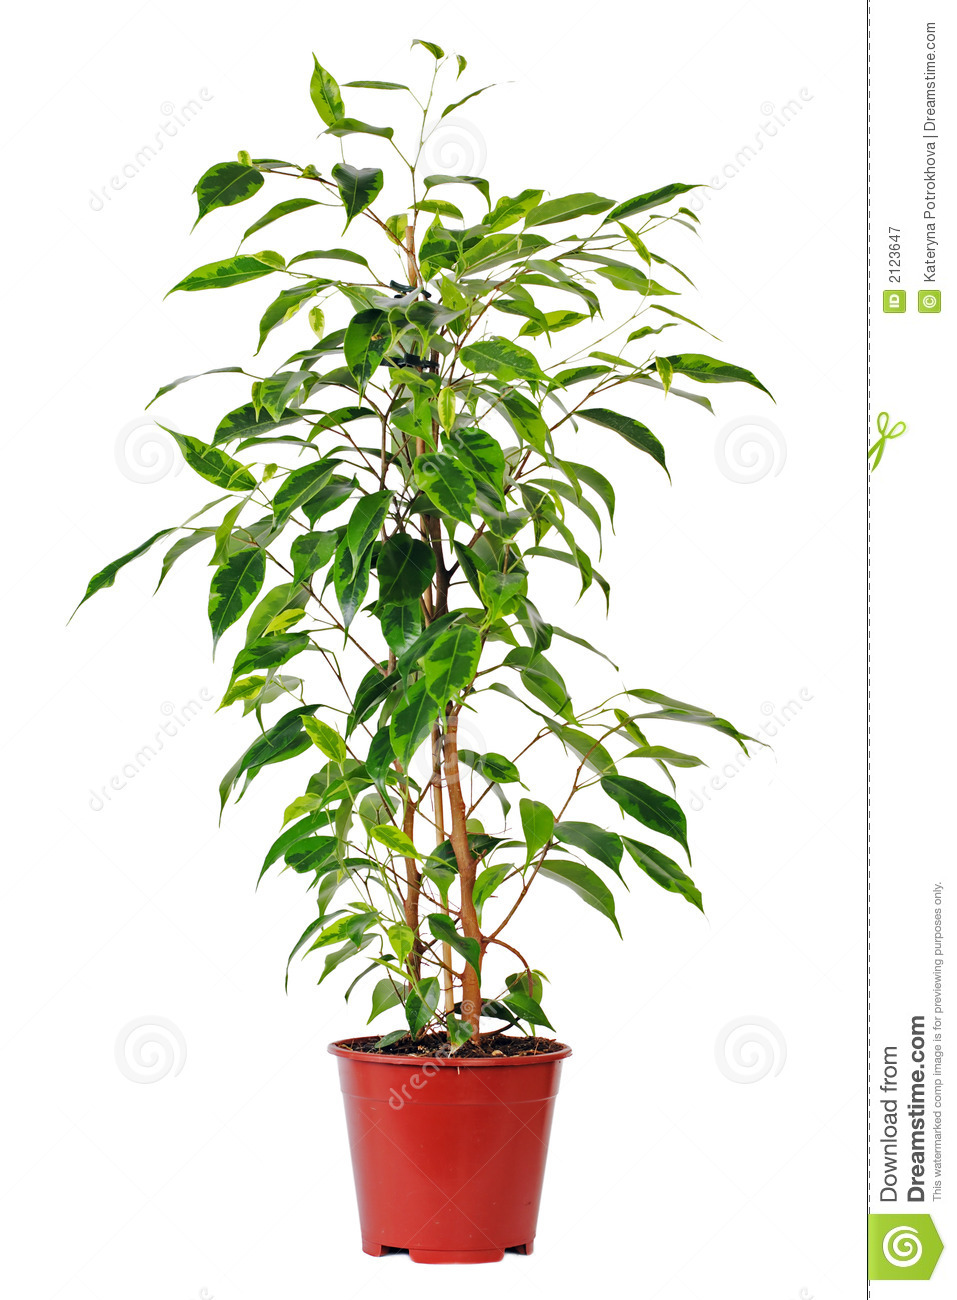 Ficus in pot royalty free stock photography image 2123647 for Where to buy indoor house plants